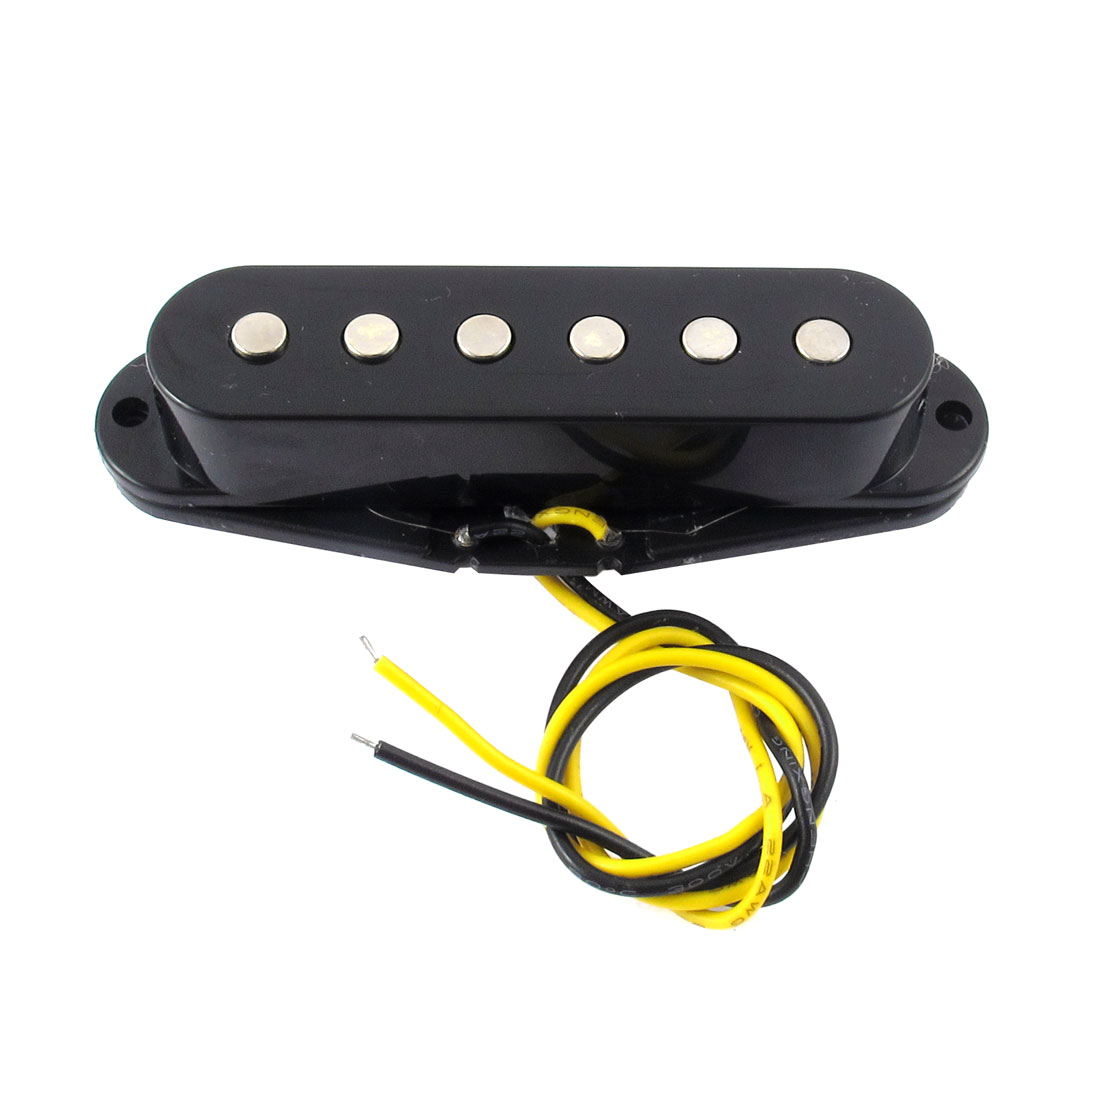 Unique Bargains LP Neck Bridge Single-coil Sound-hole Guitar Pickup for Electric Guitar Black